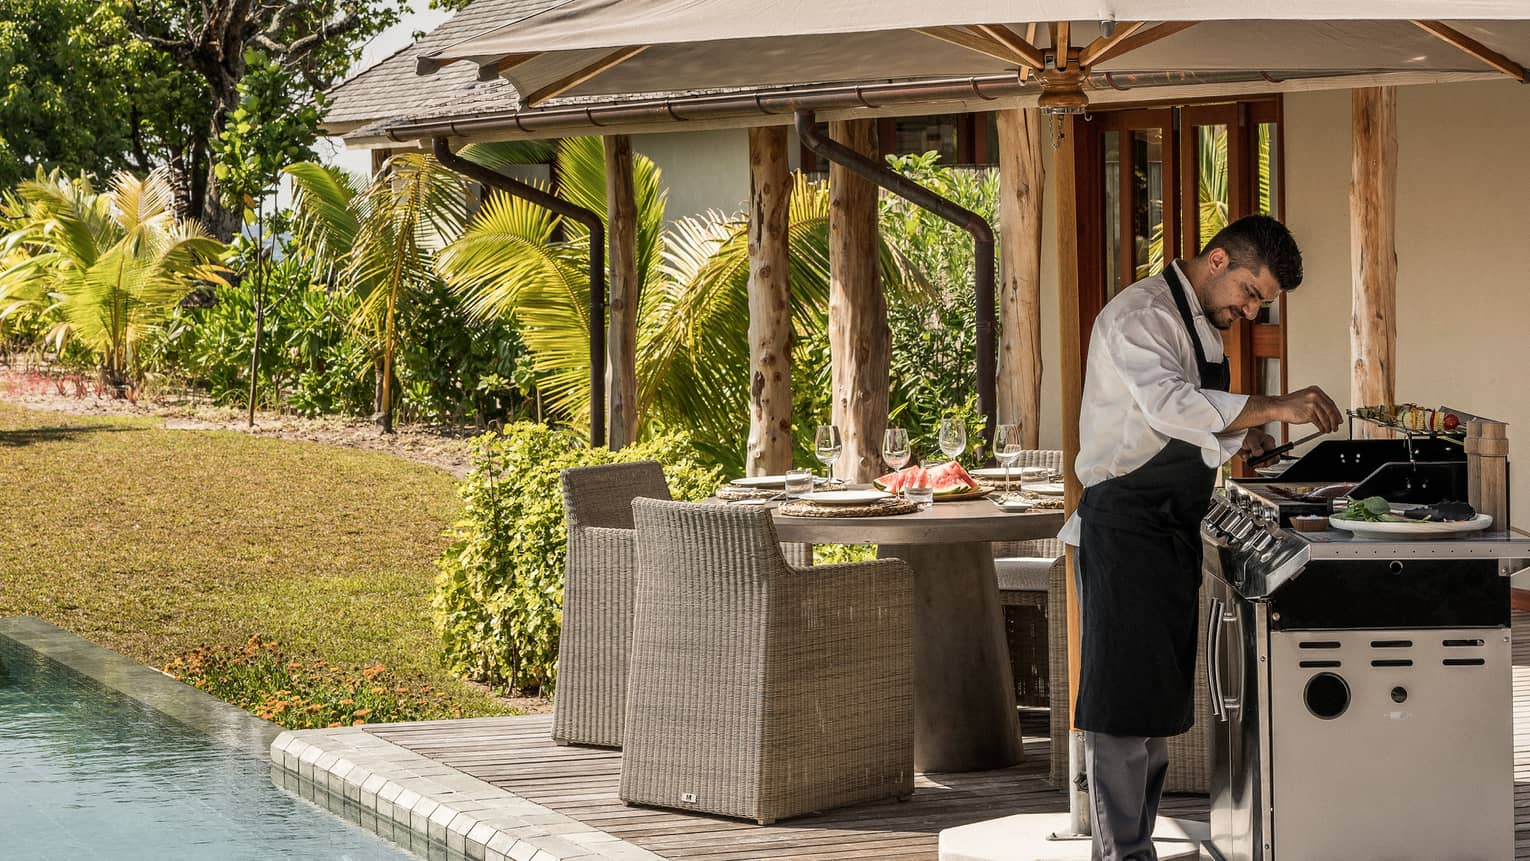 Chef wearing apron cooks at barbecue on deck by dining table, pool